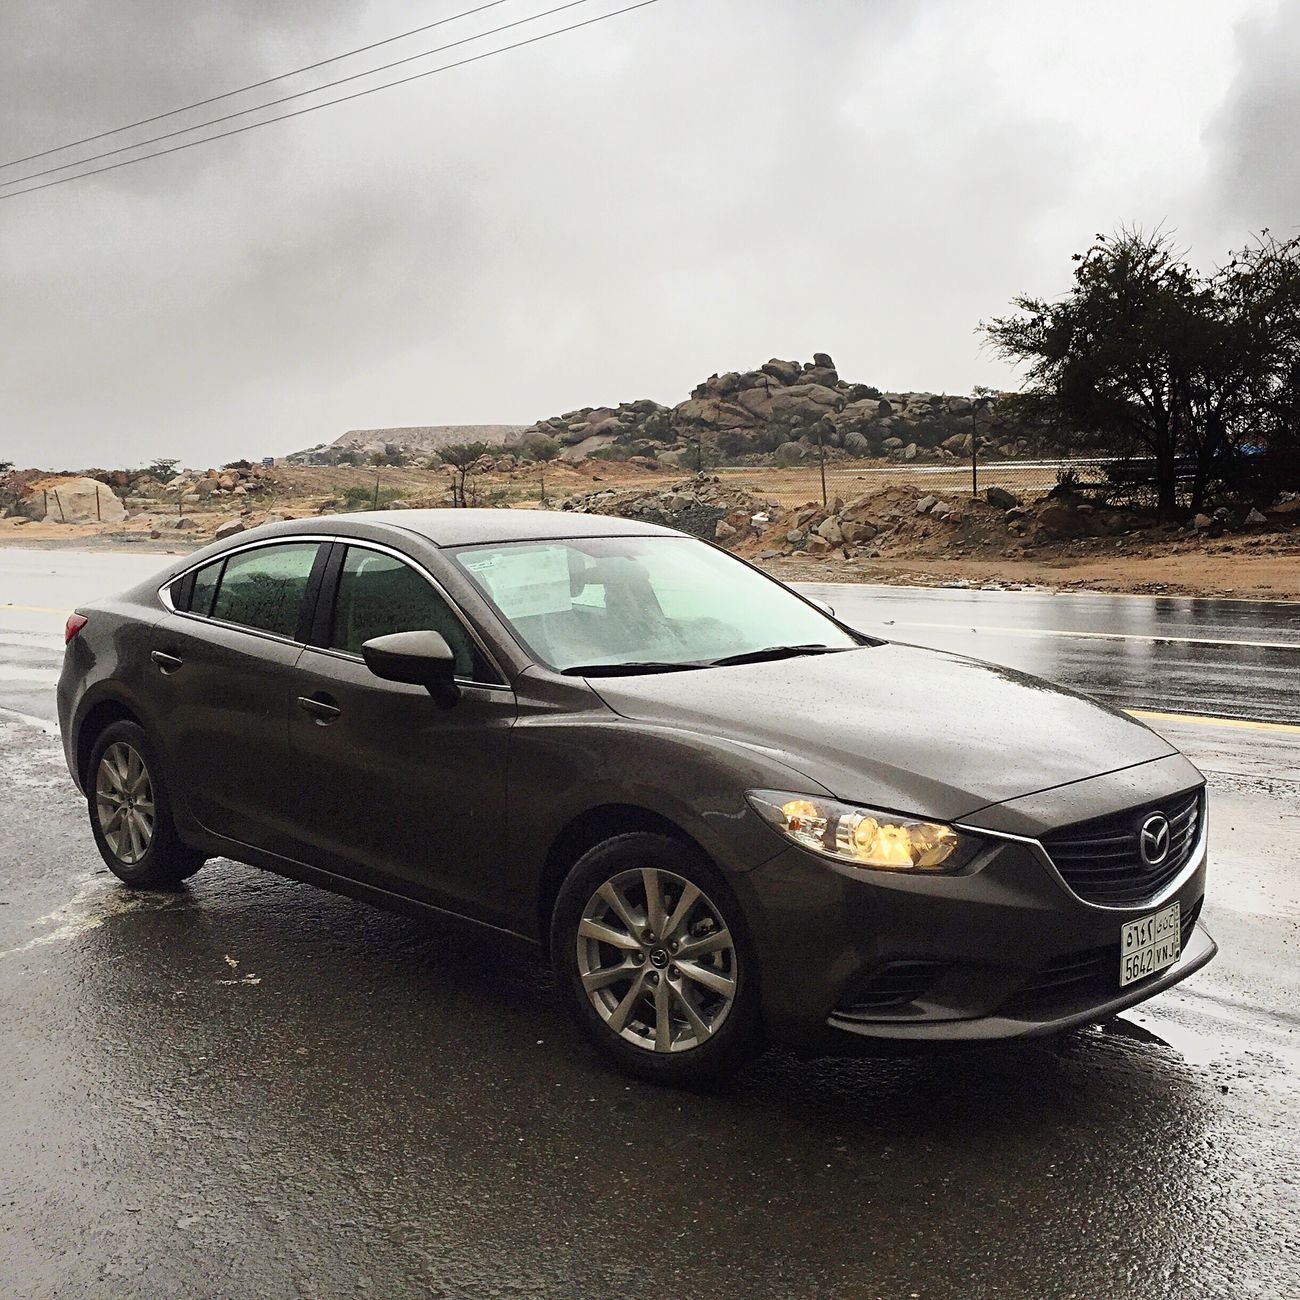 Car Taking Photos Mazda6 Mica Taking Photos Check This Out Enjoying Life Saudi Arabia Abha